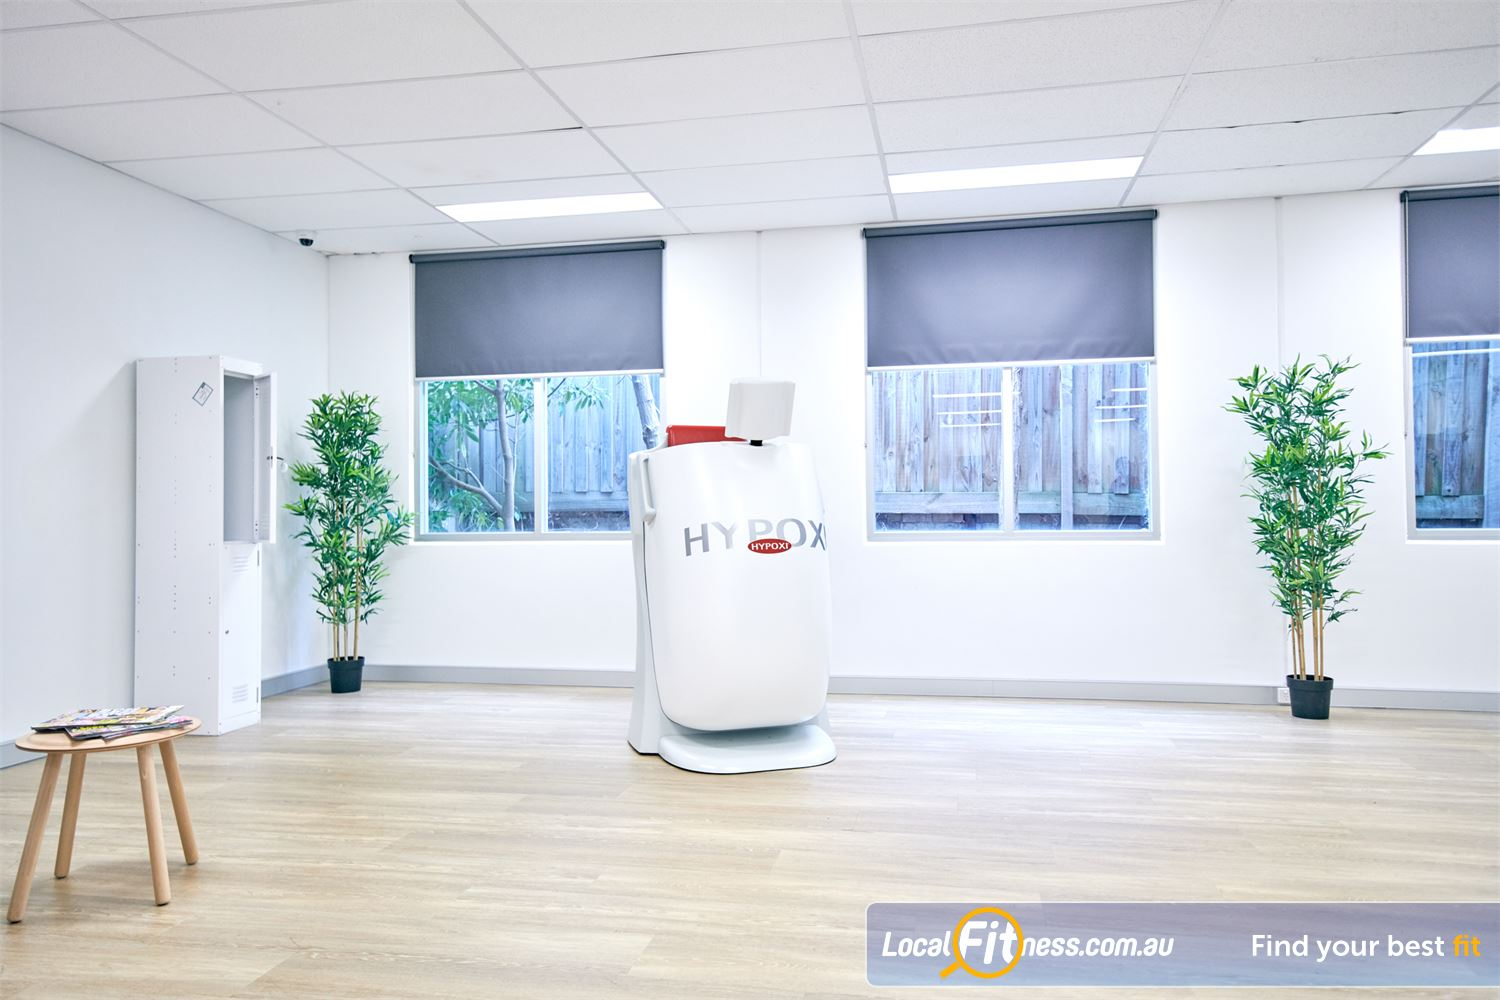 HYPOXI Weight Loss Near Willagee Our advanced HYPOXI machines will monitor your heart rate, skin temperature during treatment.